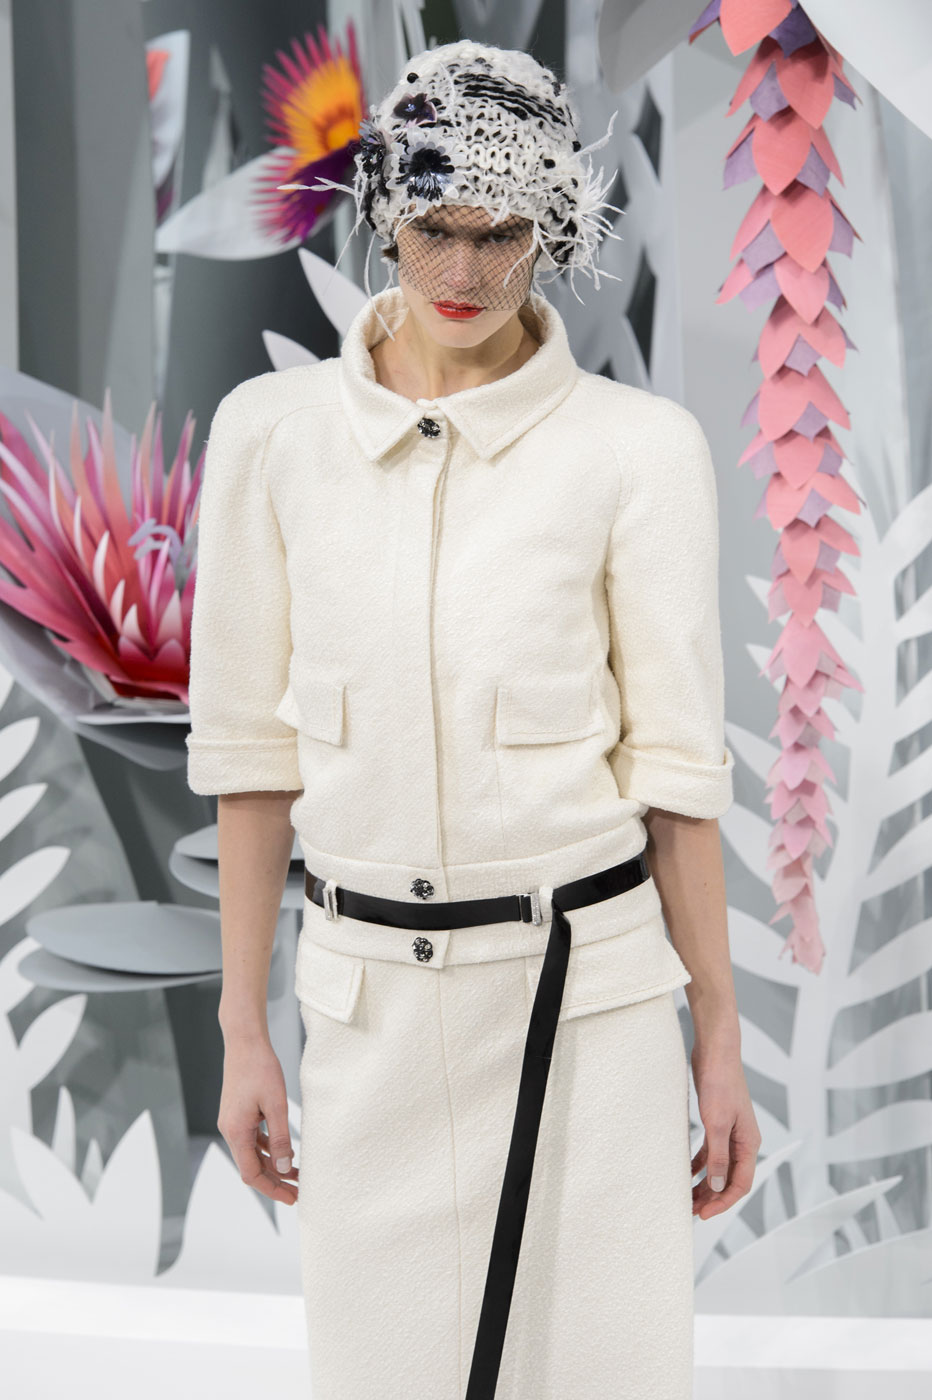 Chanel-fashion-runway-show-haute-couture-paris-spring-summer-2015-the-impression-049